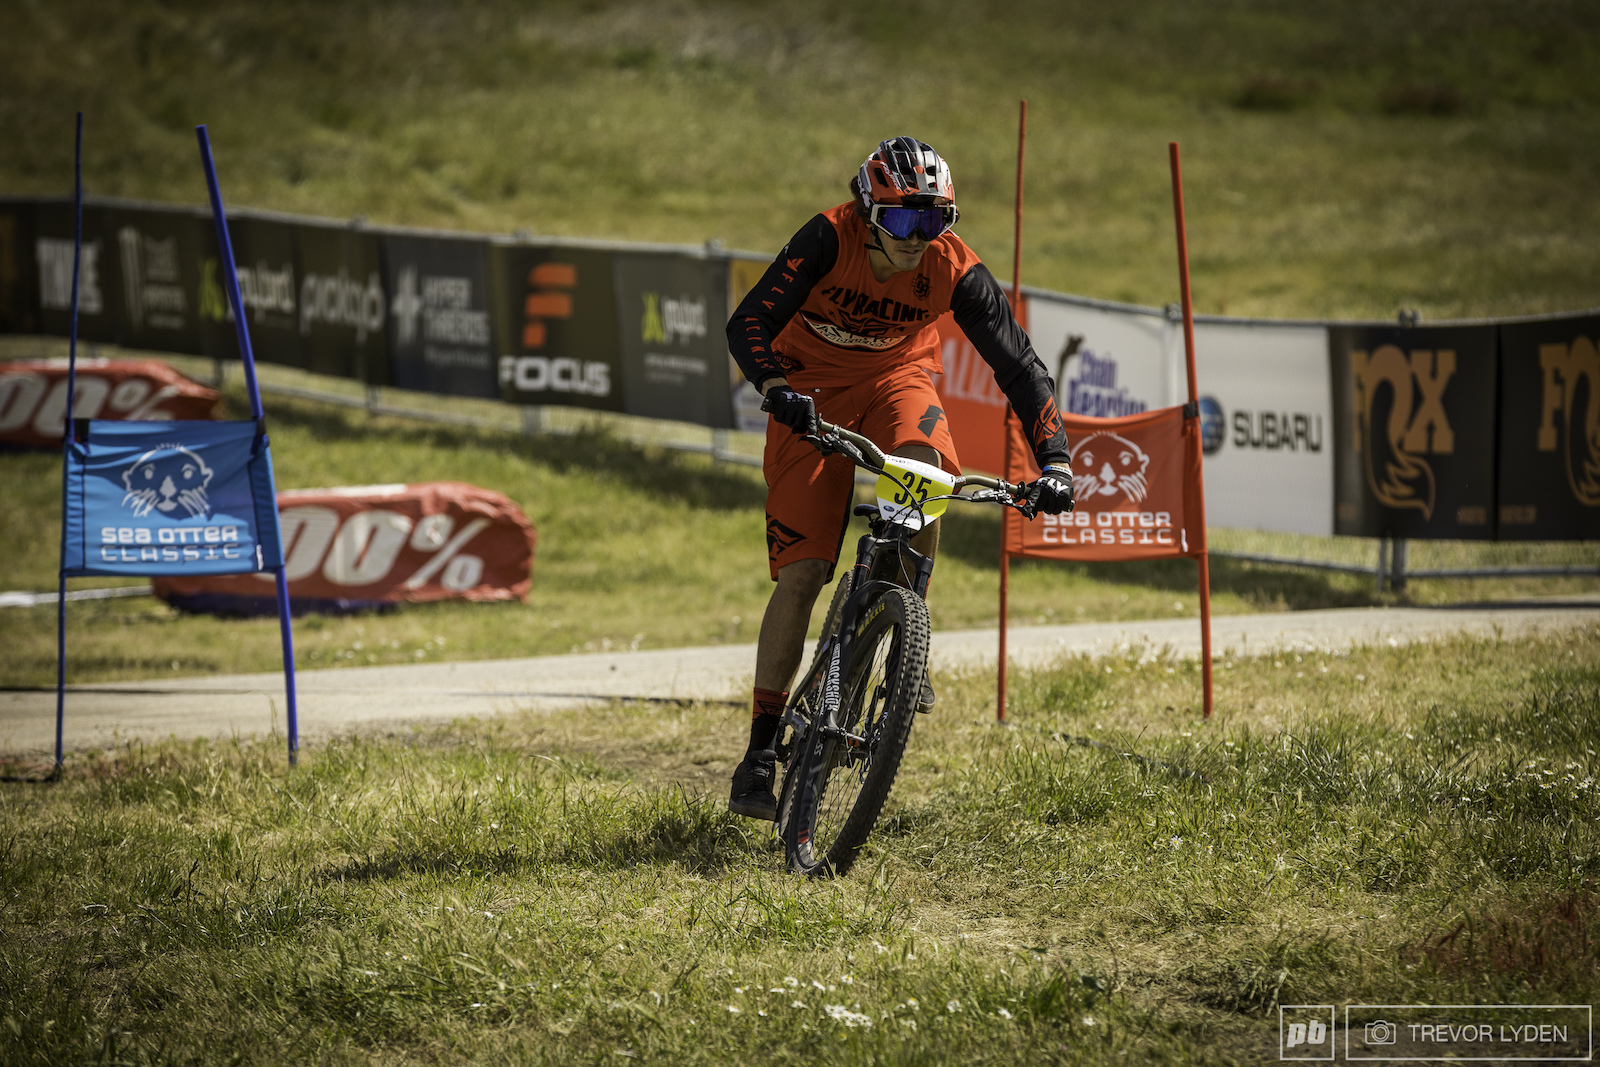 Tristan Hunter sprinting on stage 4 which had riders winding down through the dual slalom course.